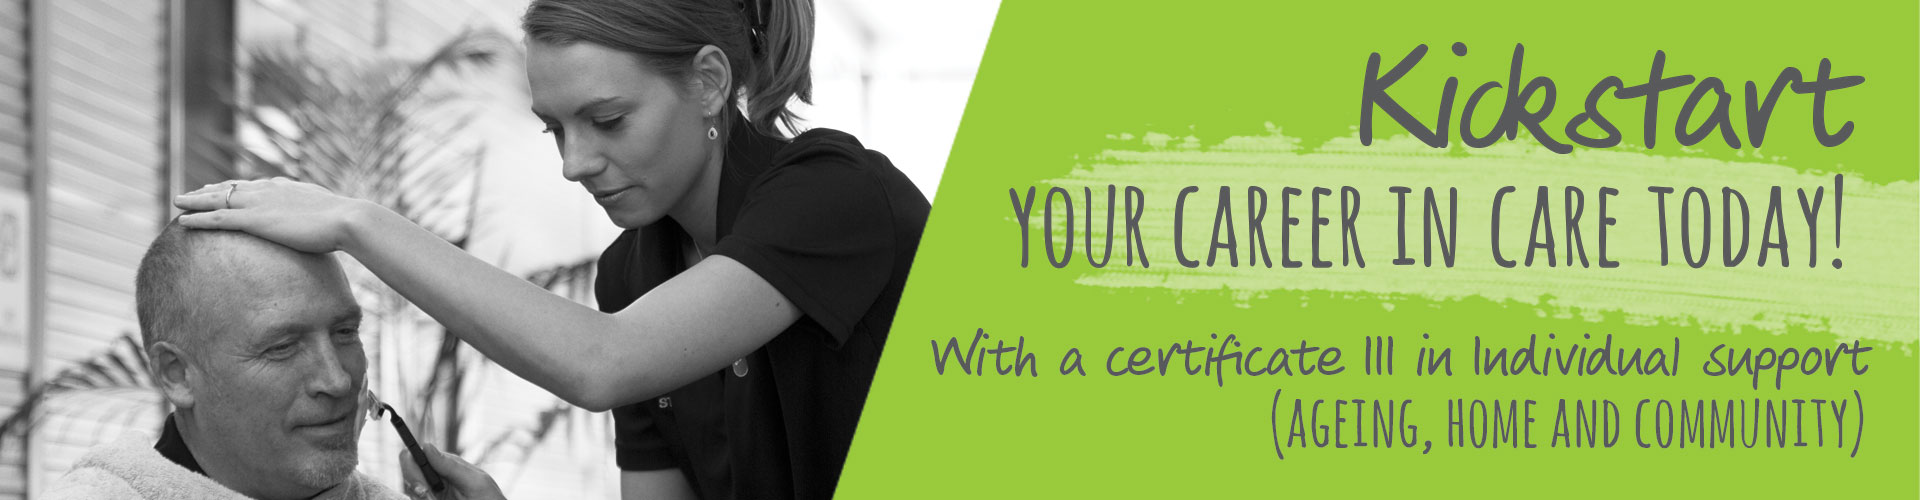 STEPS Education & Training | Certificate III in Individual Support (Ageing, Home and Community)